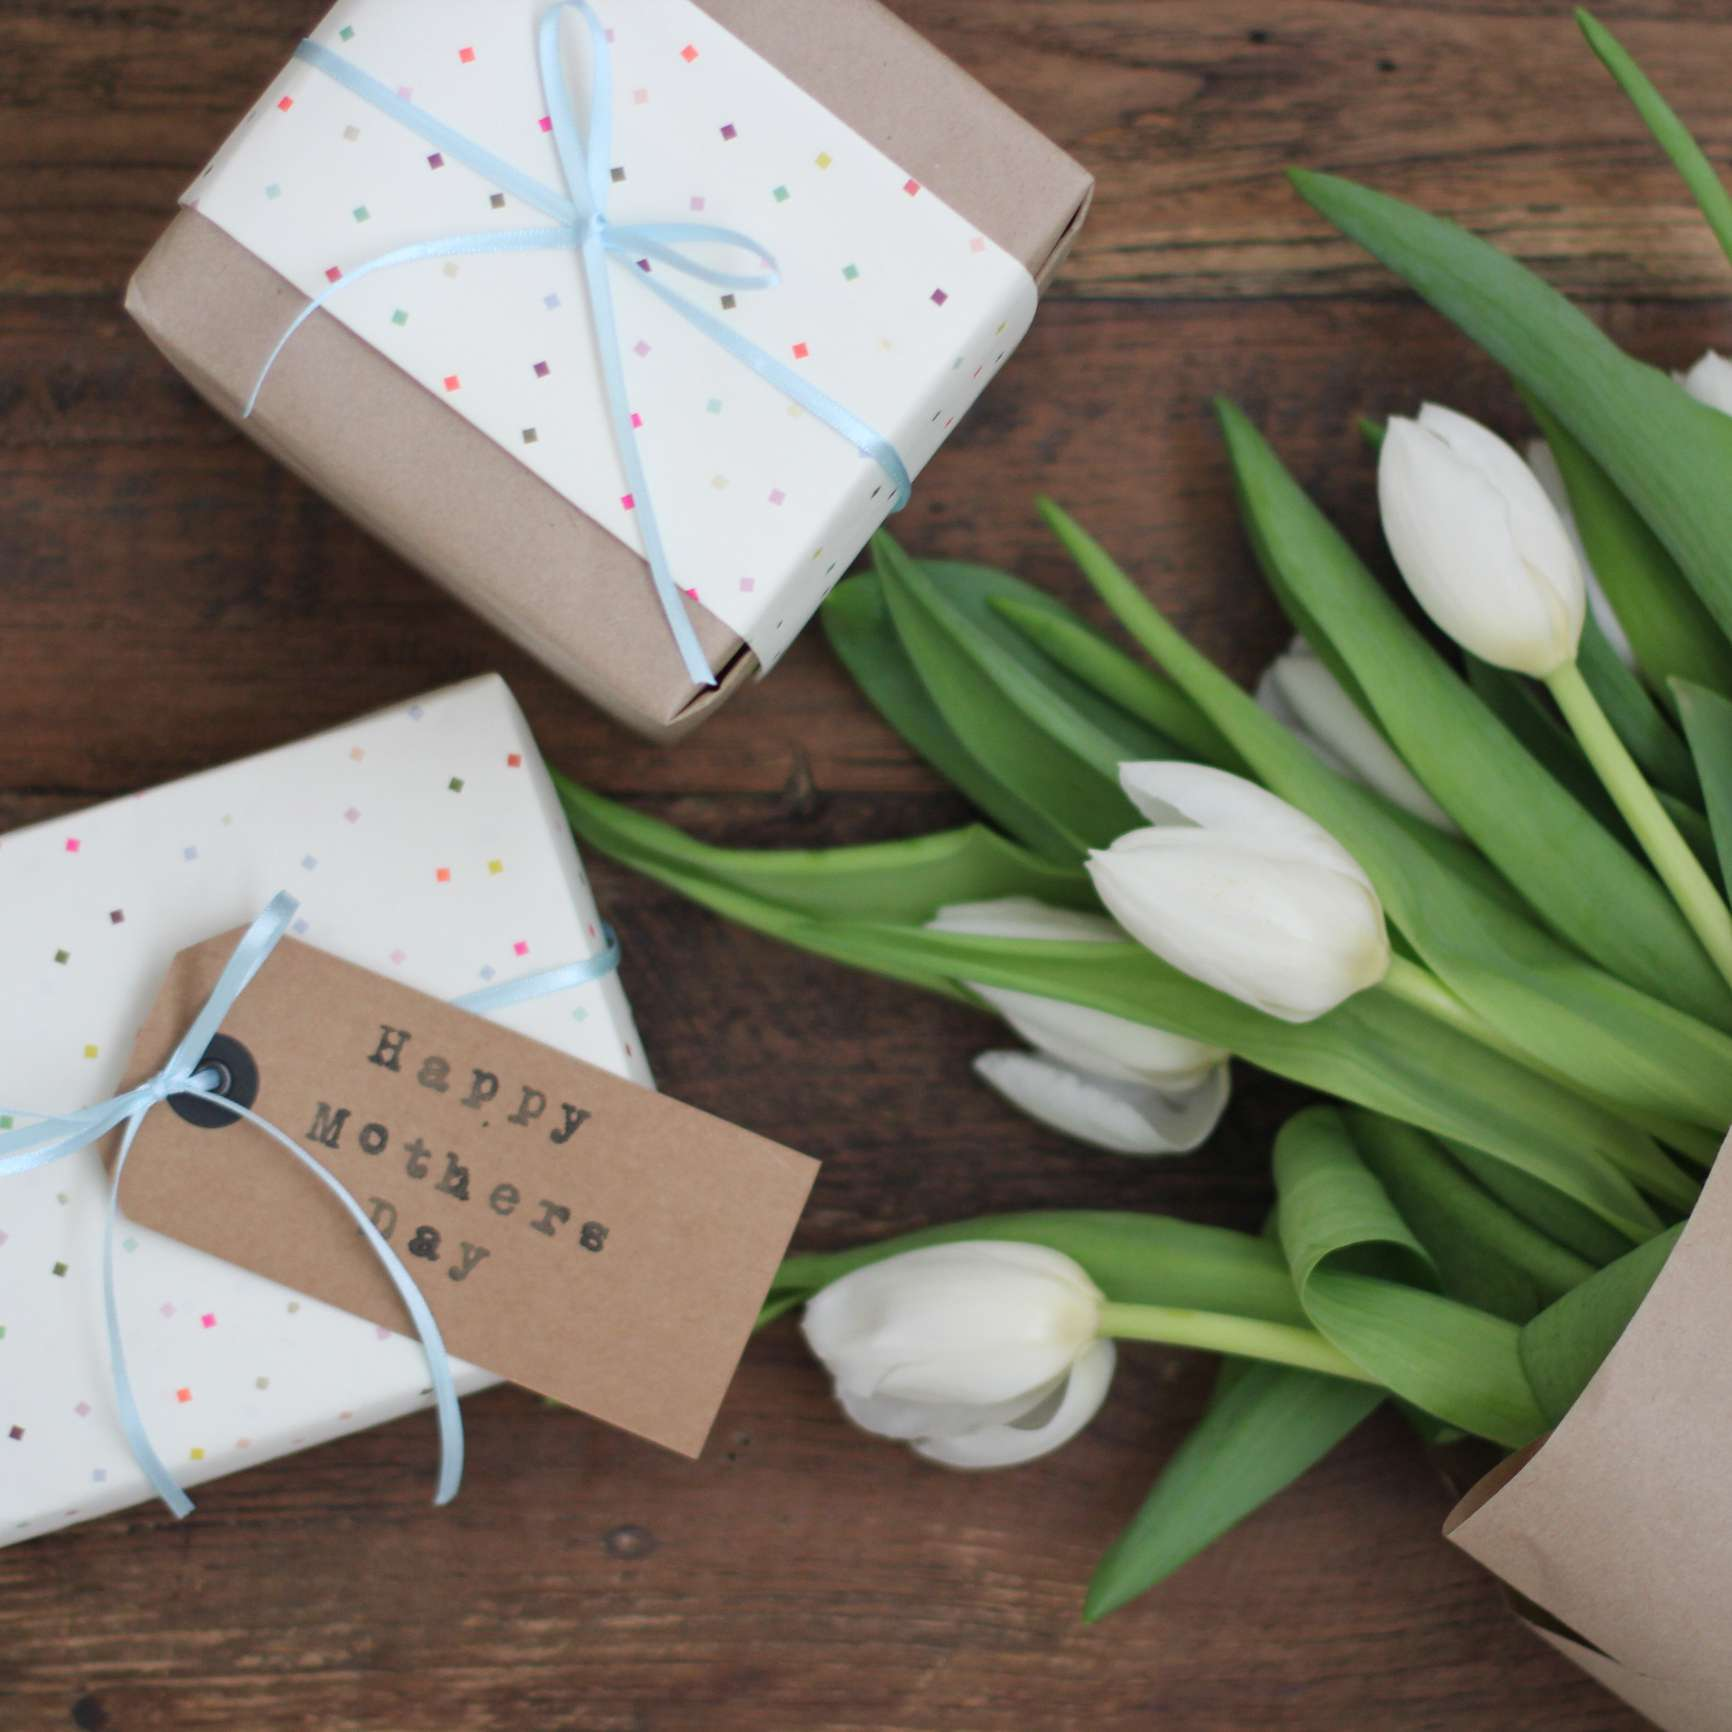 Gifts as clutter